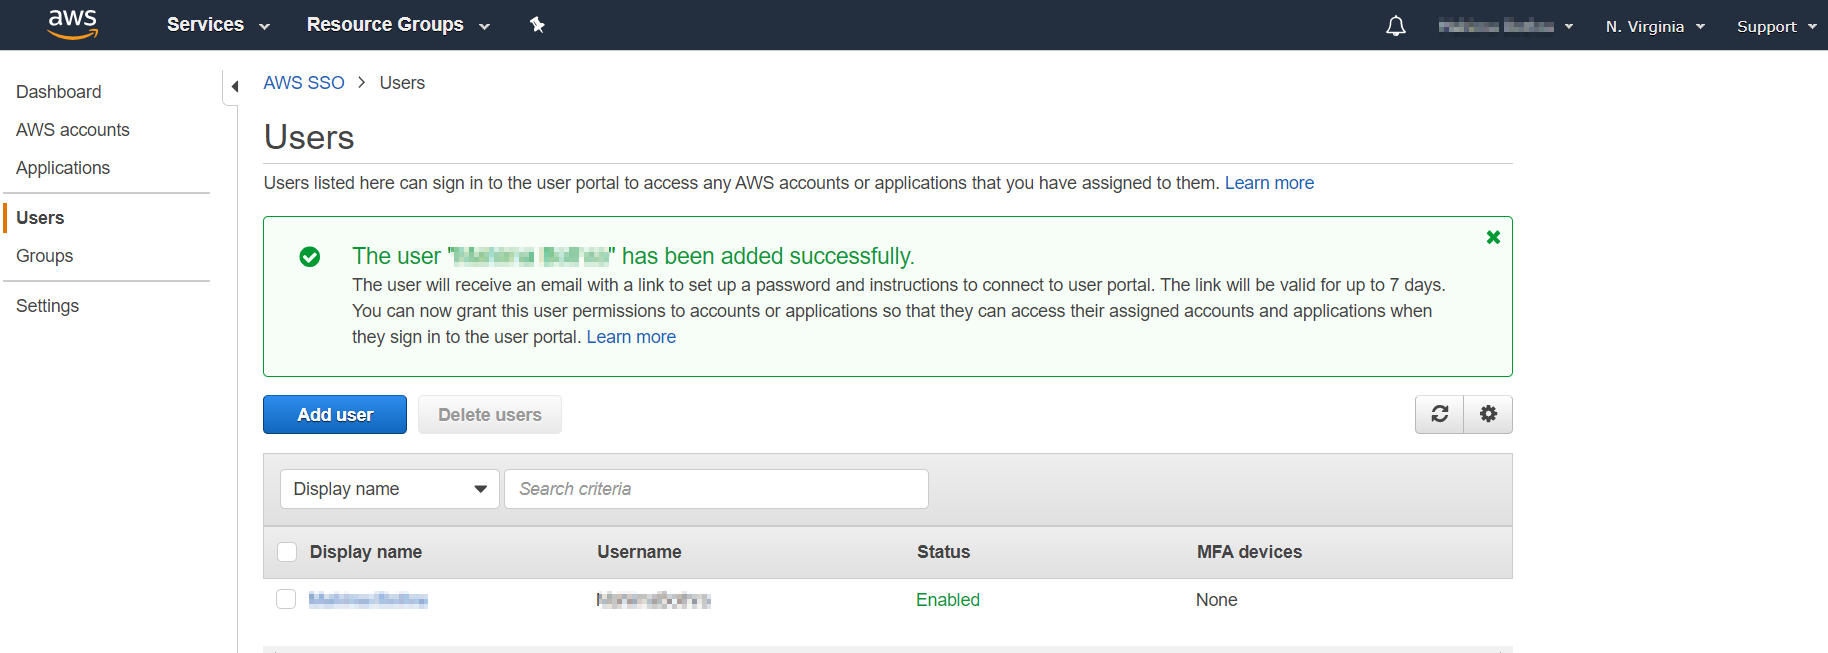 SAML Single Sign On(SSO) using AWS Identity Provider, Added User